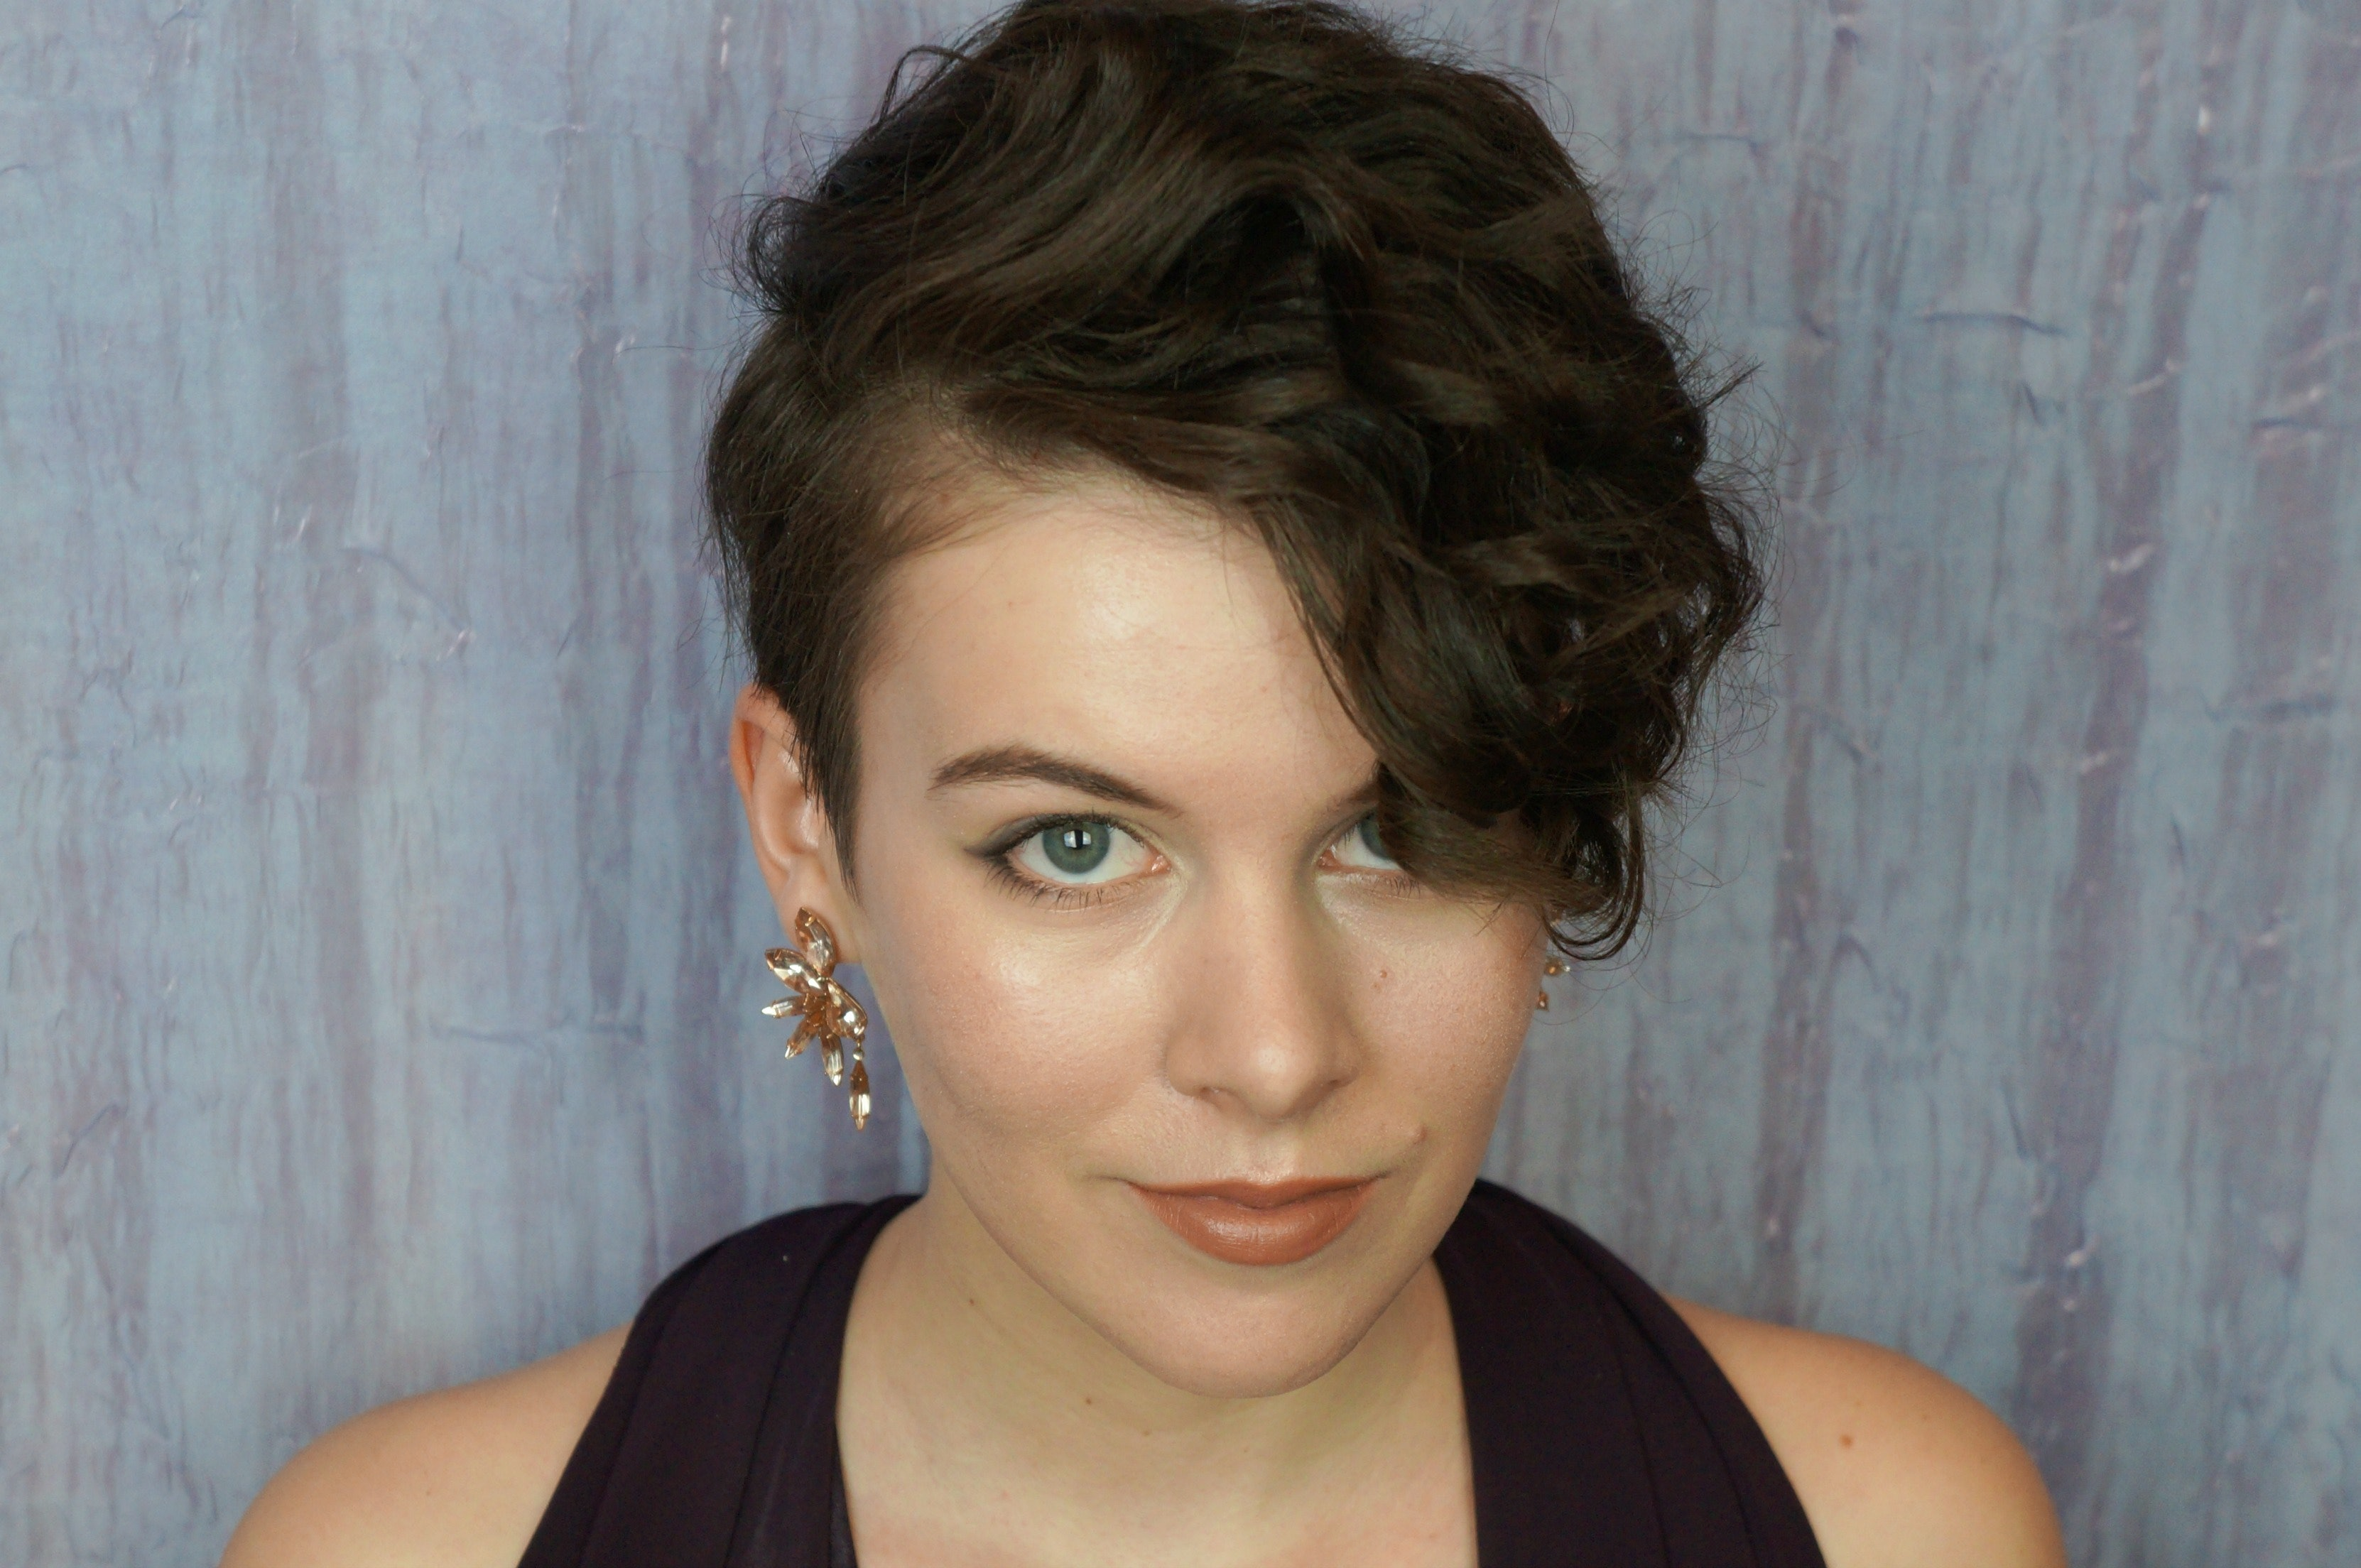 4 short hairstyles for prom that prove pixie cuts can be extremely